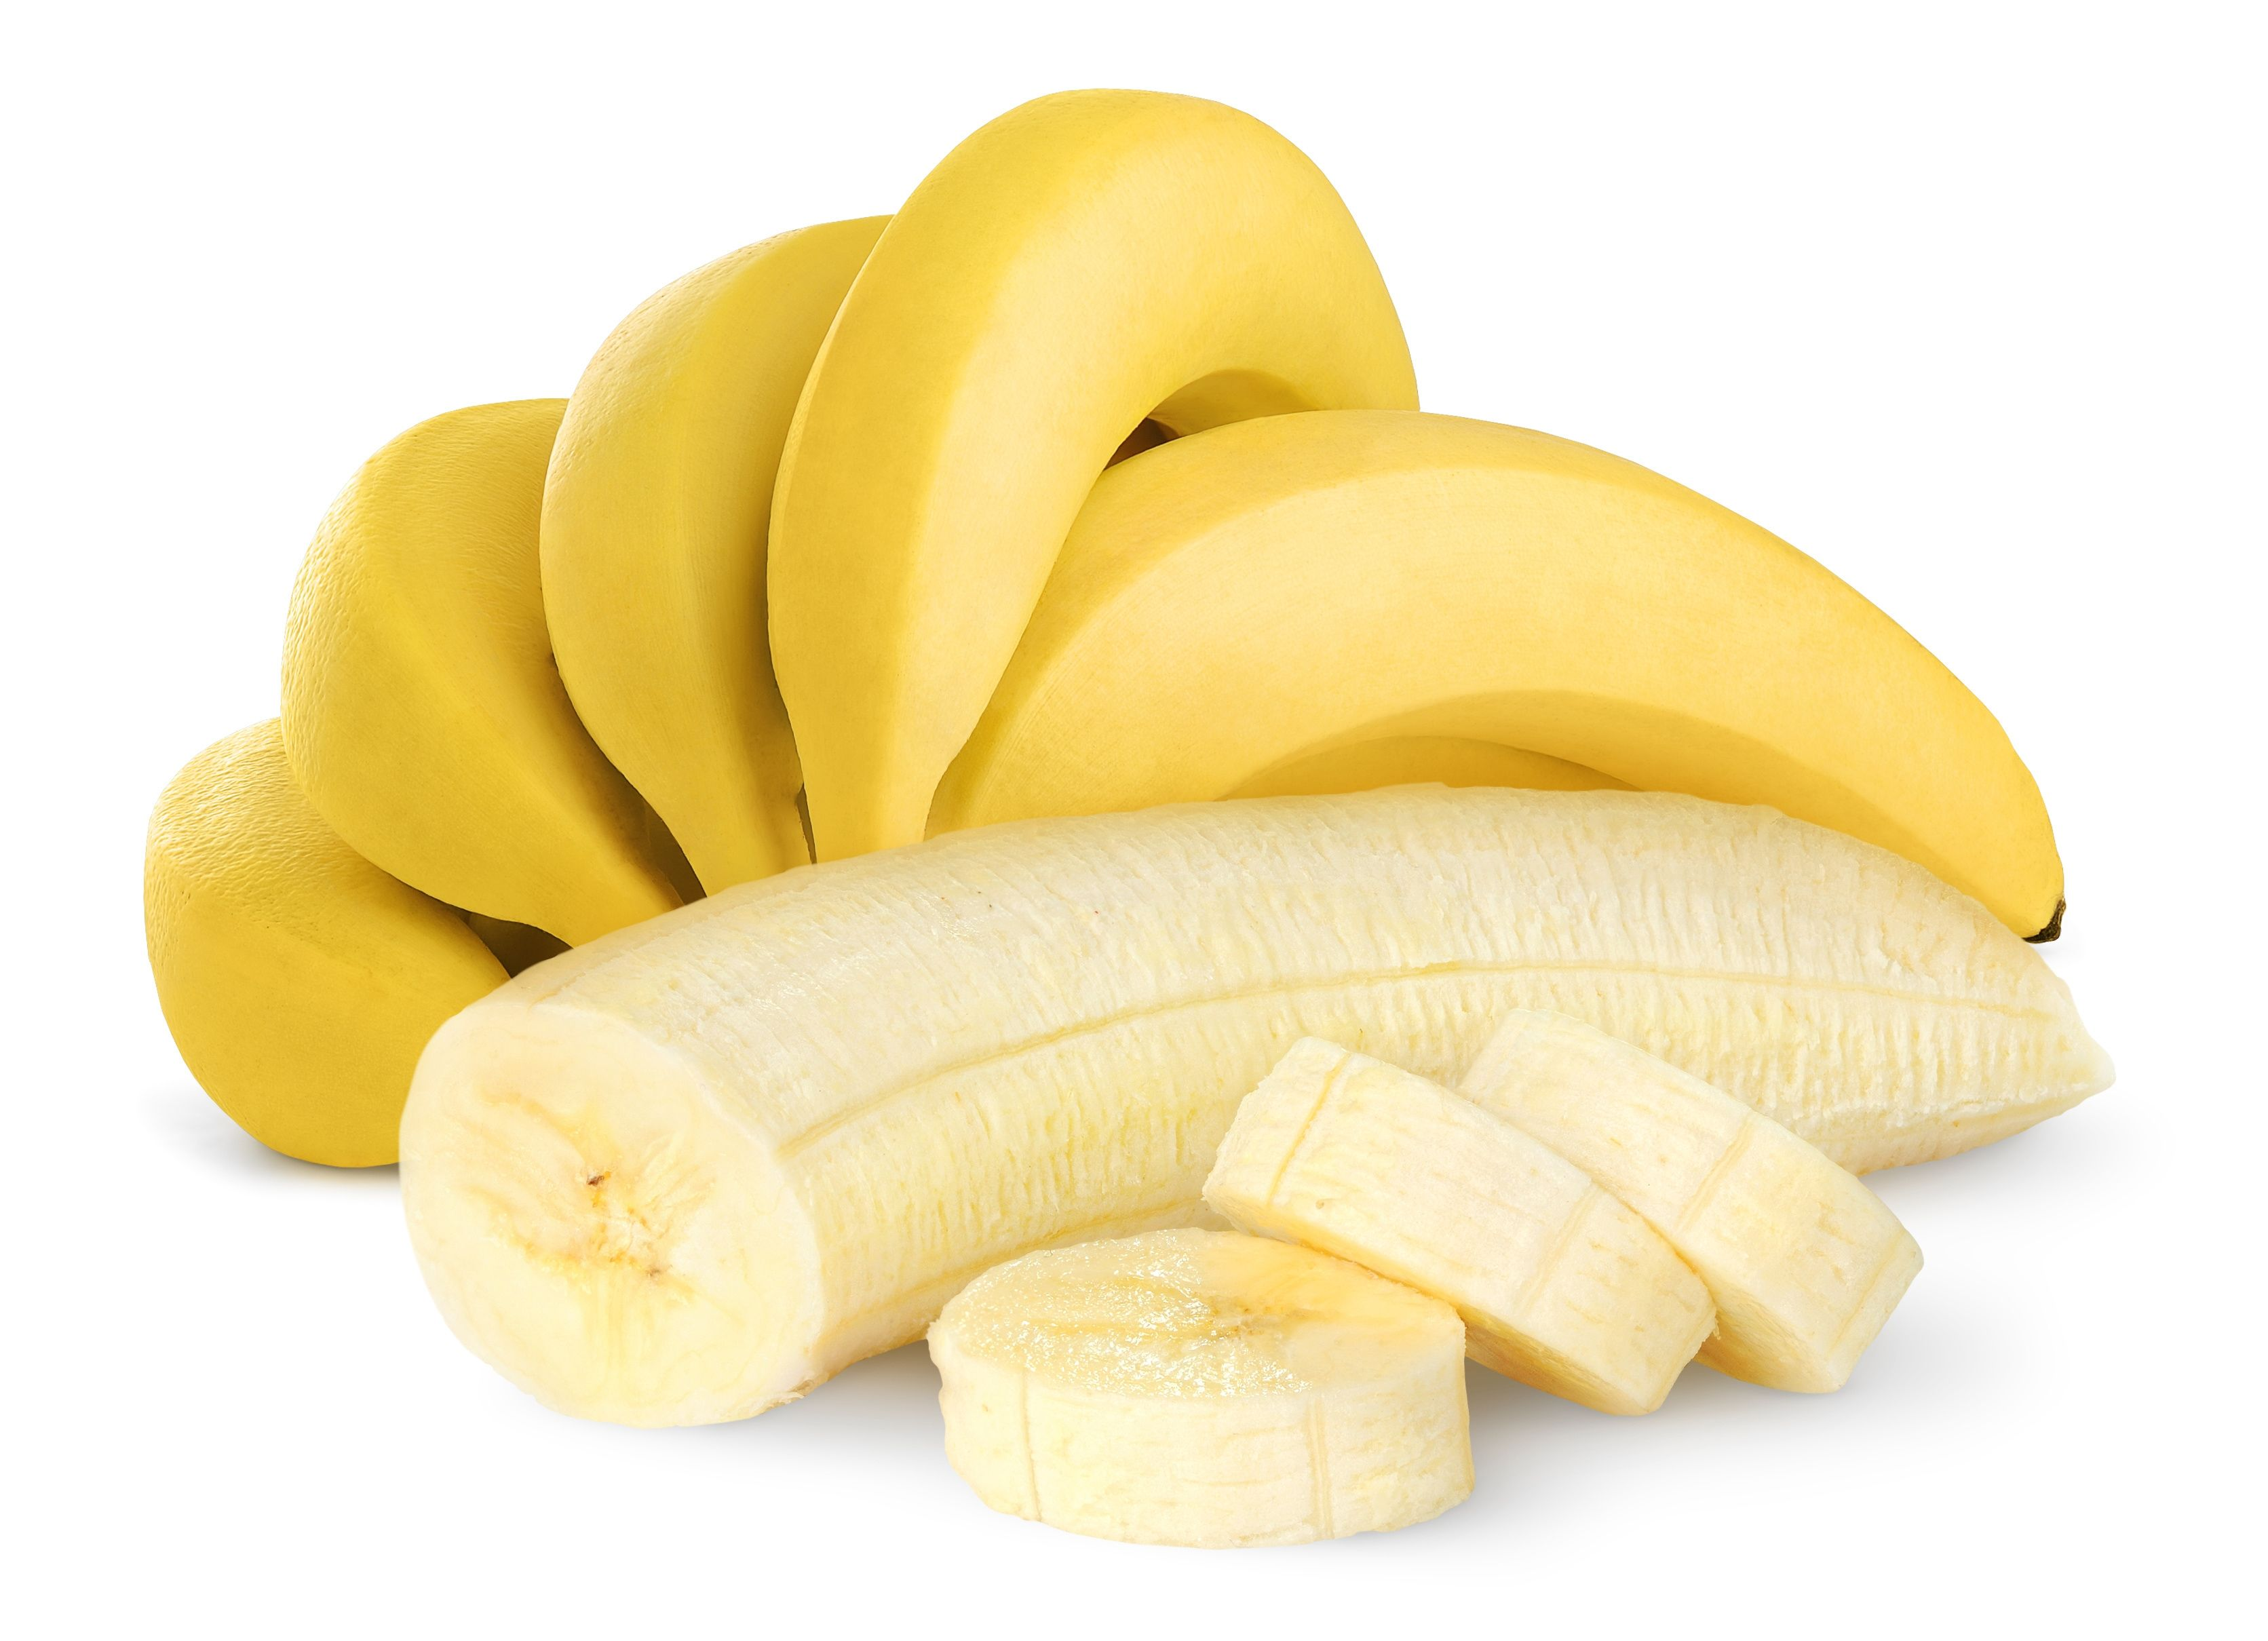 Banana HD Images 4 Whb BananaHDImages Fruit Wallpapers Hdwallpapers